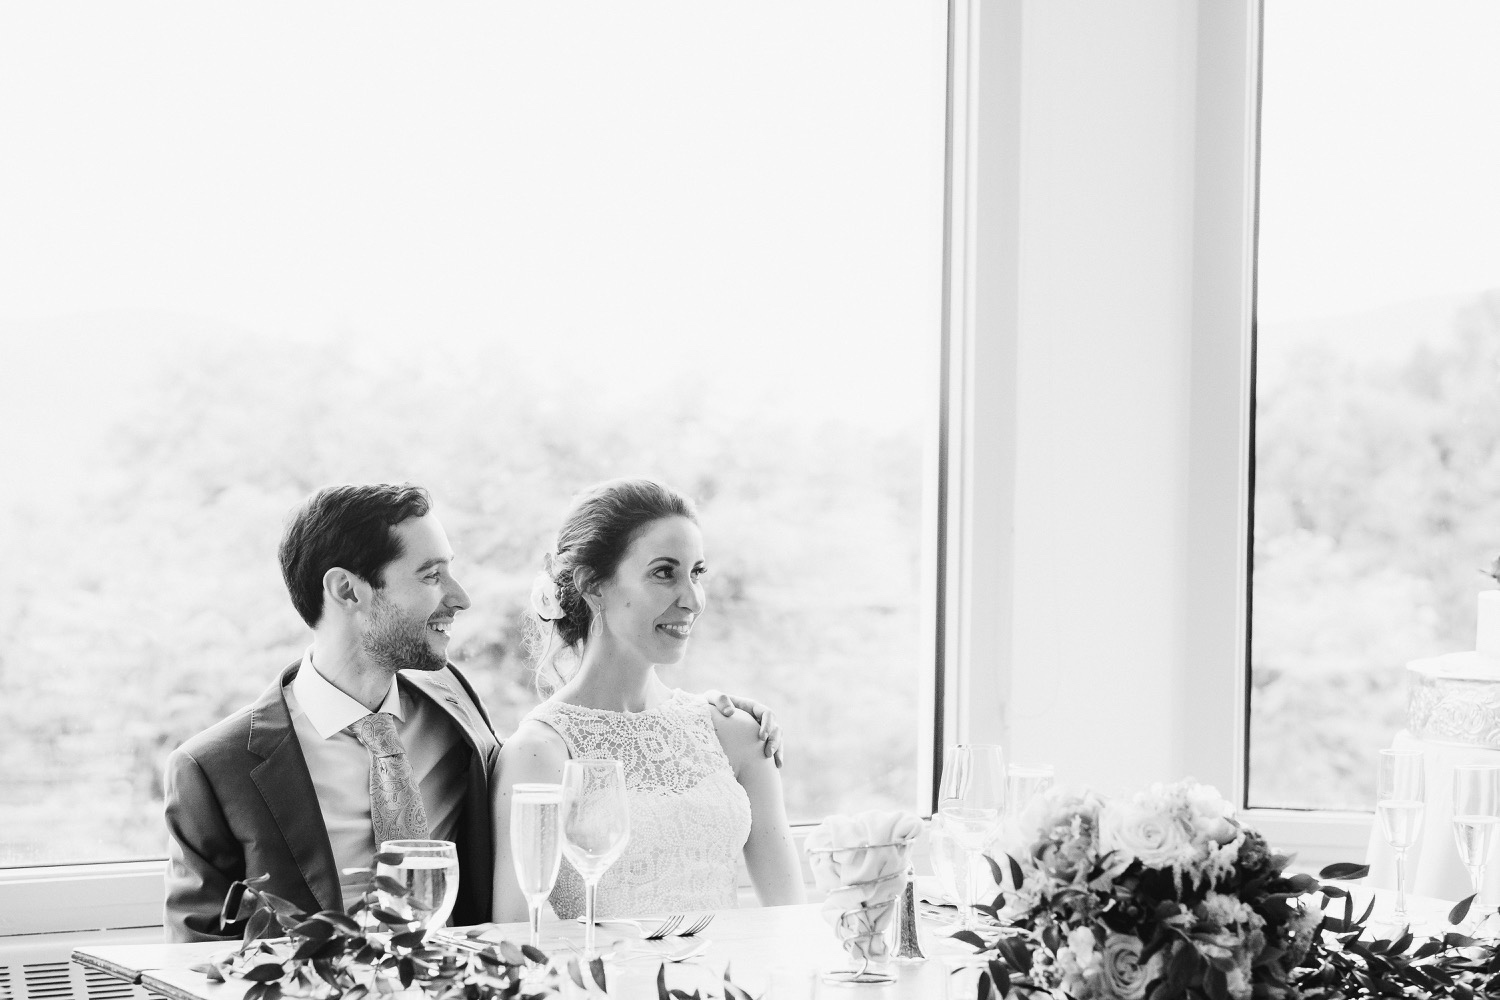 The Garrison Wedding, The Garrison venue, Hudson Valley wedding, hudson valley wedding photographer, catskills wedding photographer, the garrison wedding photos, best catskills wedding photographer, wedding photo inspo, wedding moment inspiration, black and white, dinner moment